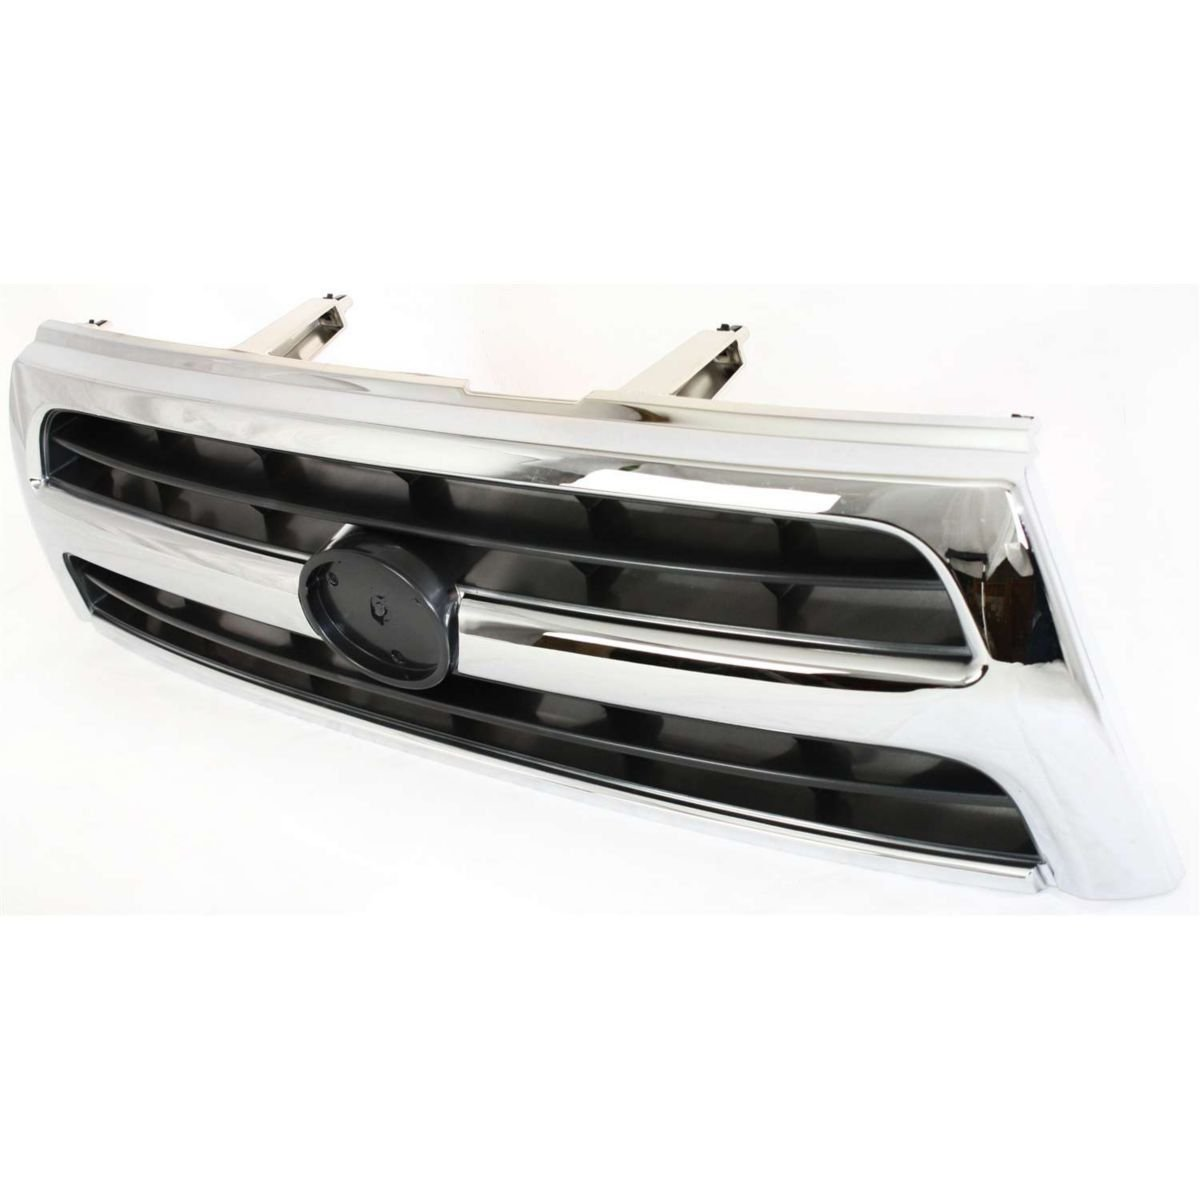 Diften 102-A5013-X01 - New Grille Assembly Grill Chrome shell silver black insert TO1200228 5311135460